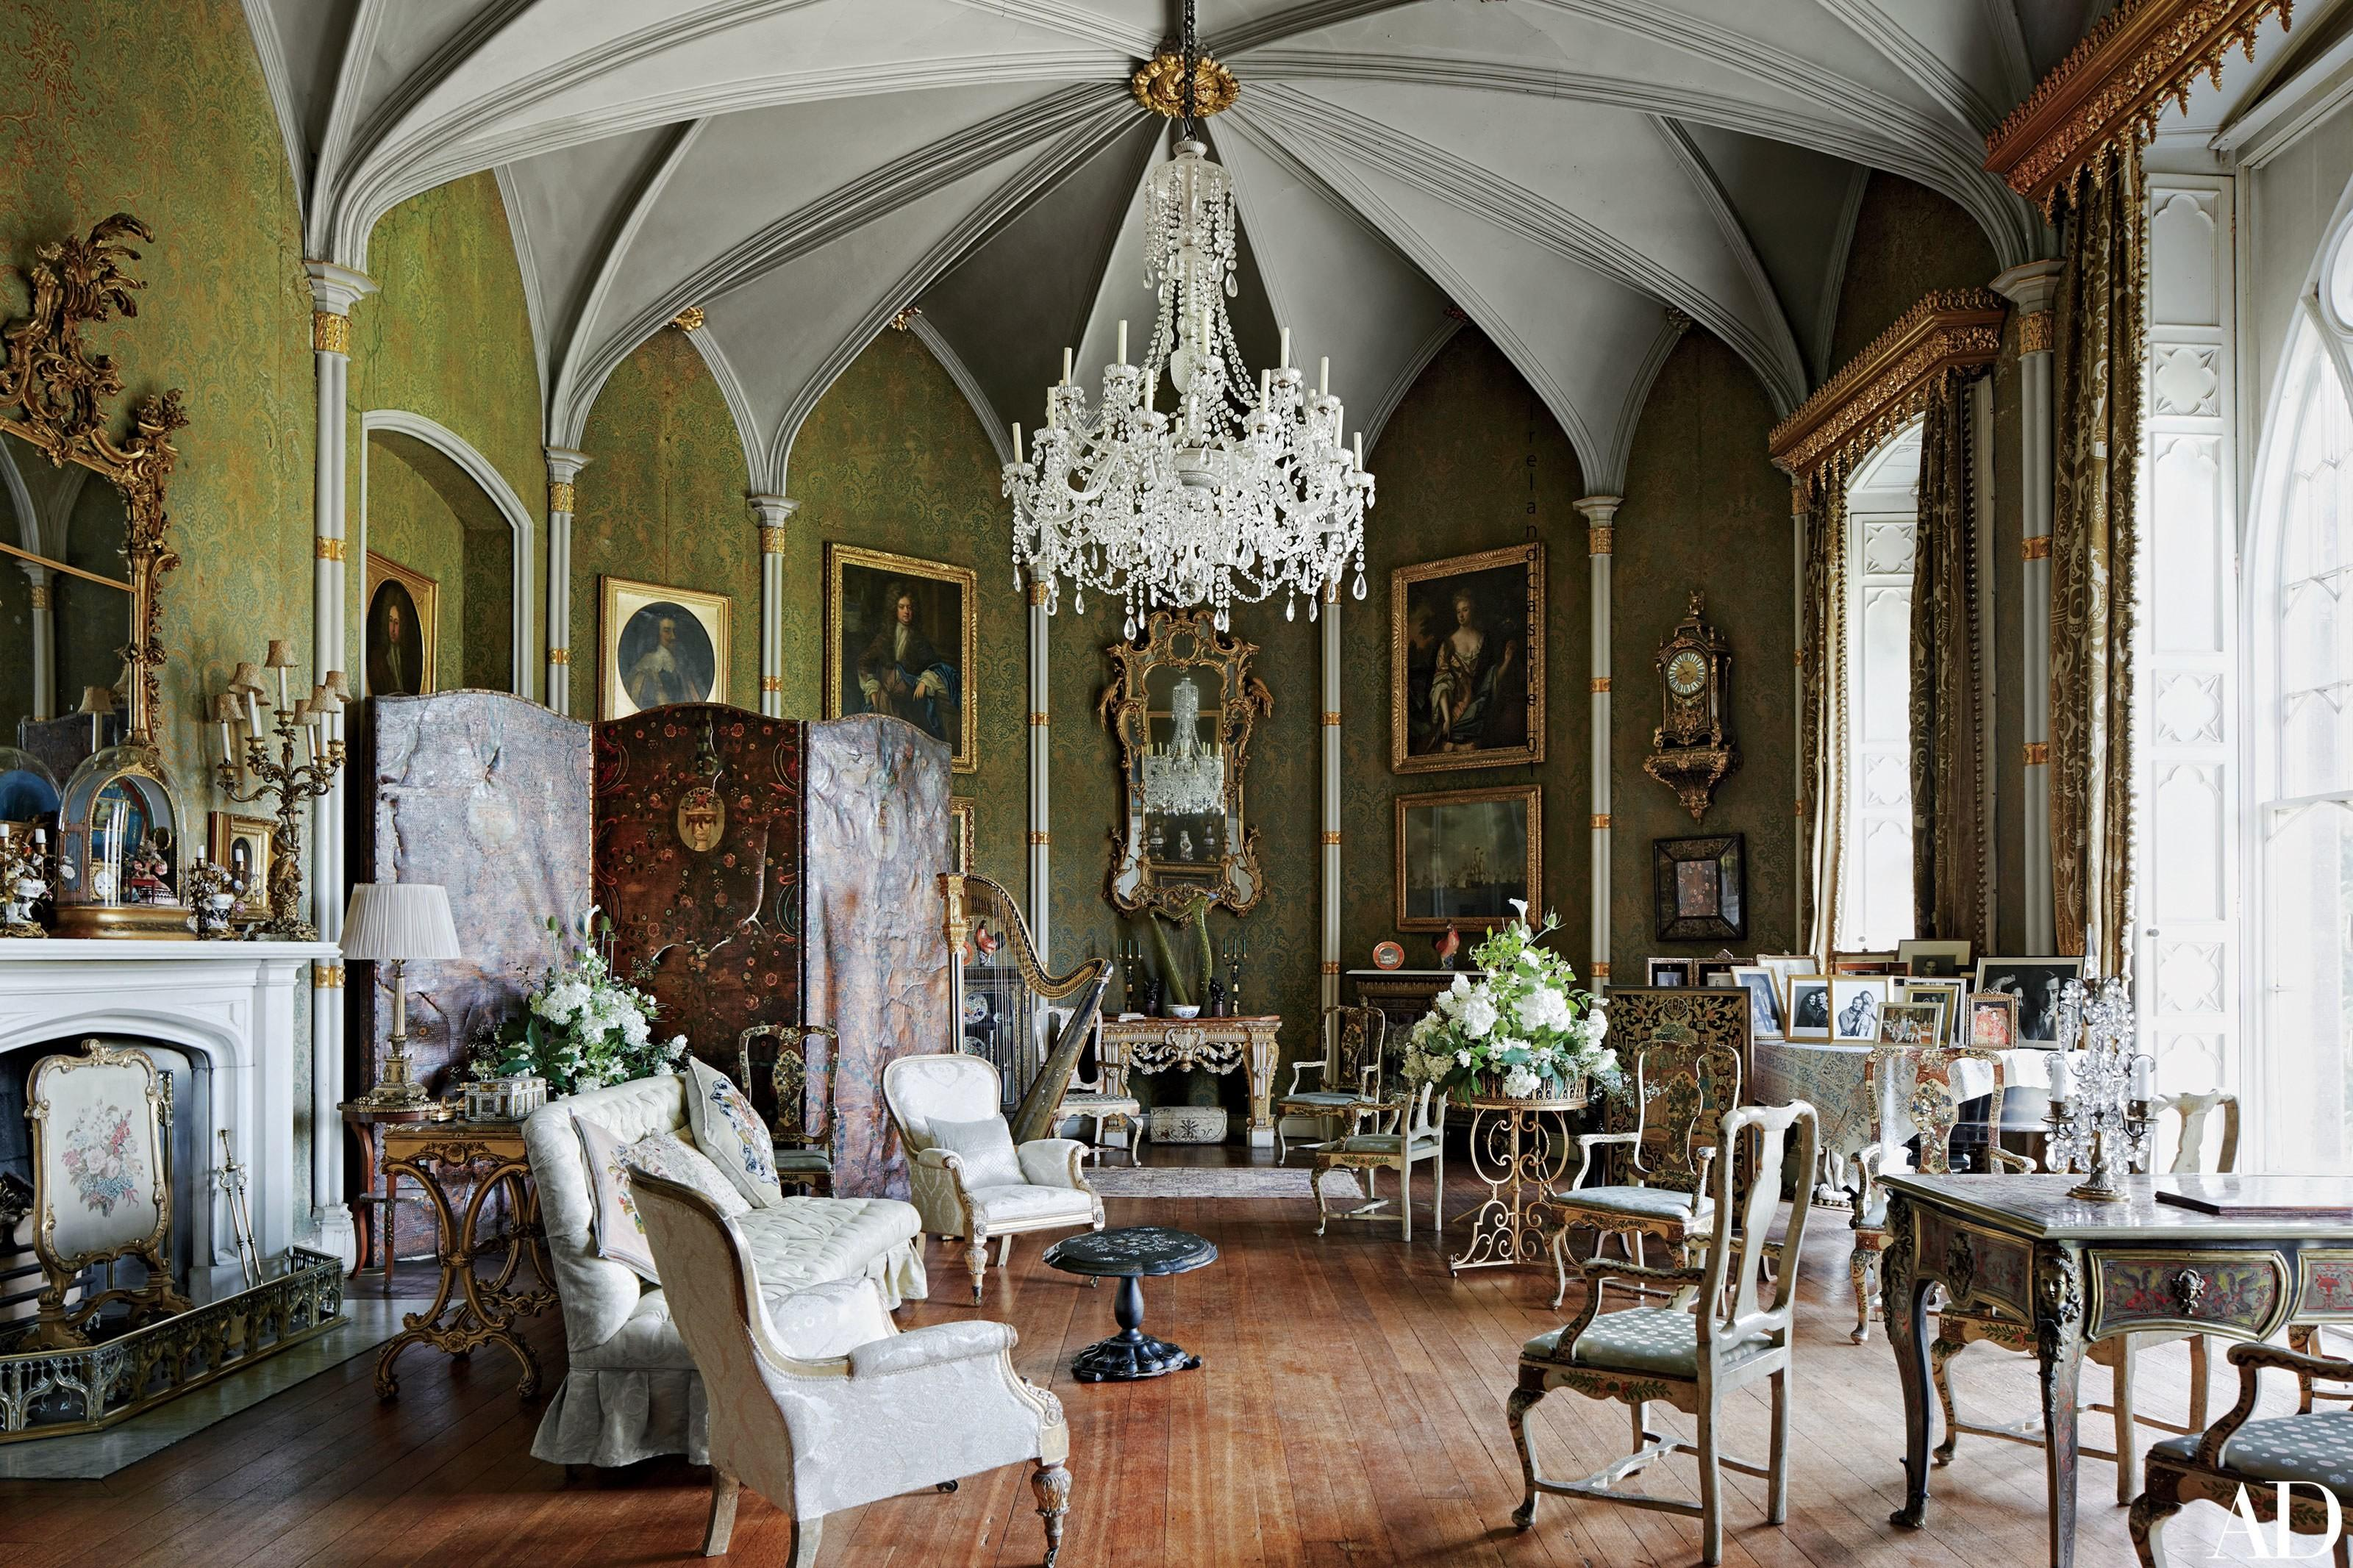 Ireland Historic Birr Castle Receives Chic Makeover